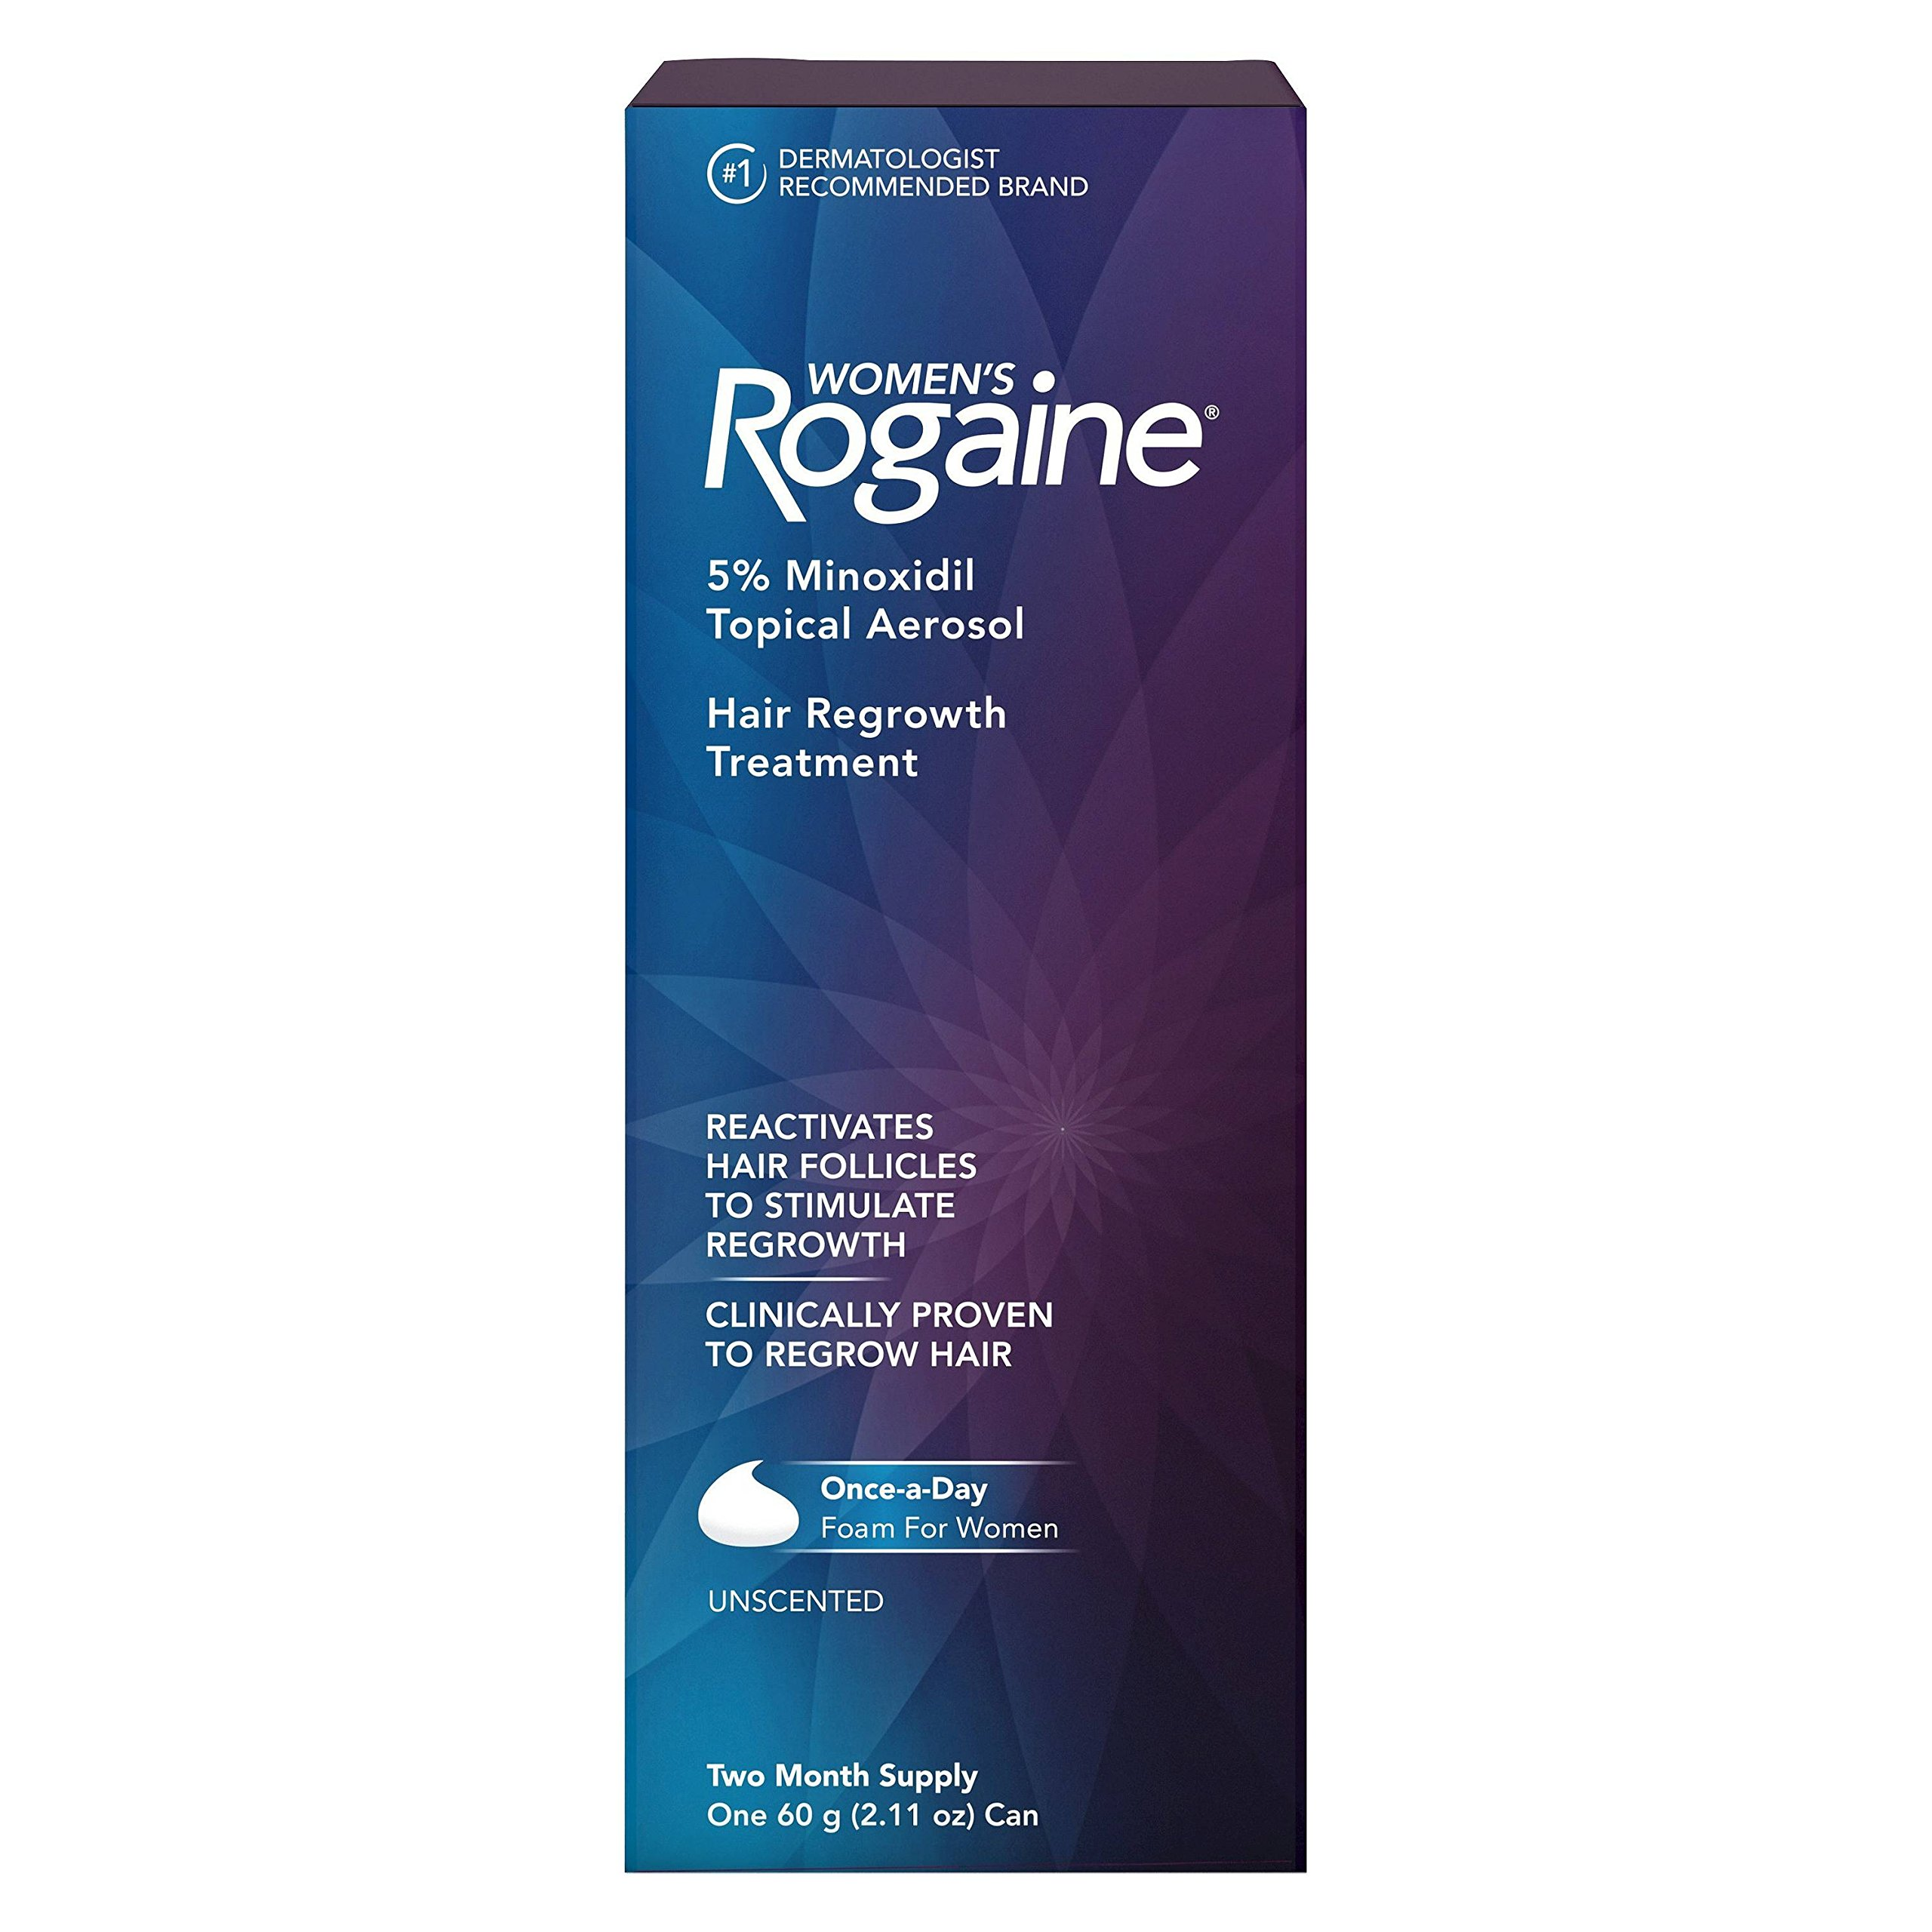 Women's Rogaine Once-a-Day Foam Hair Regrowth Treatment, 2.11oz. Per Pack (3 Pack)